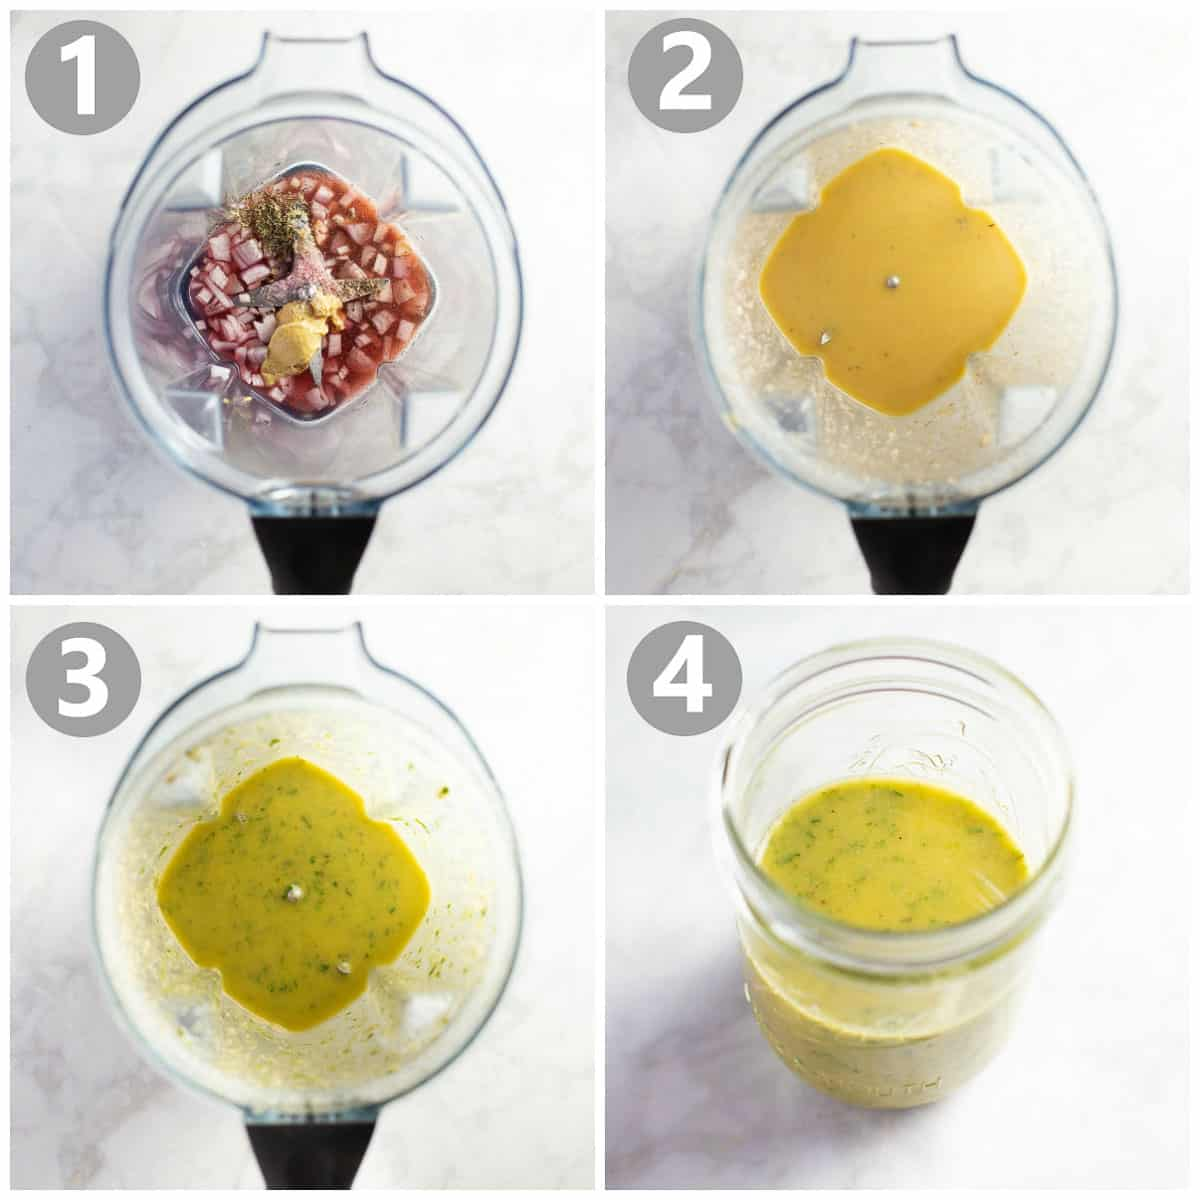 Step-by-step instructions on making a herb vinaigrette.